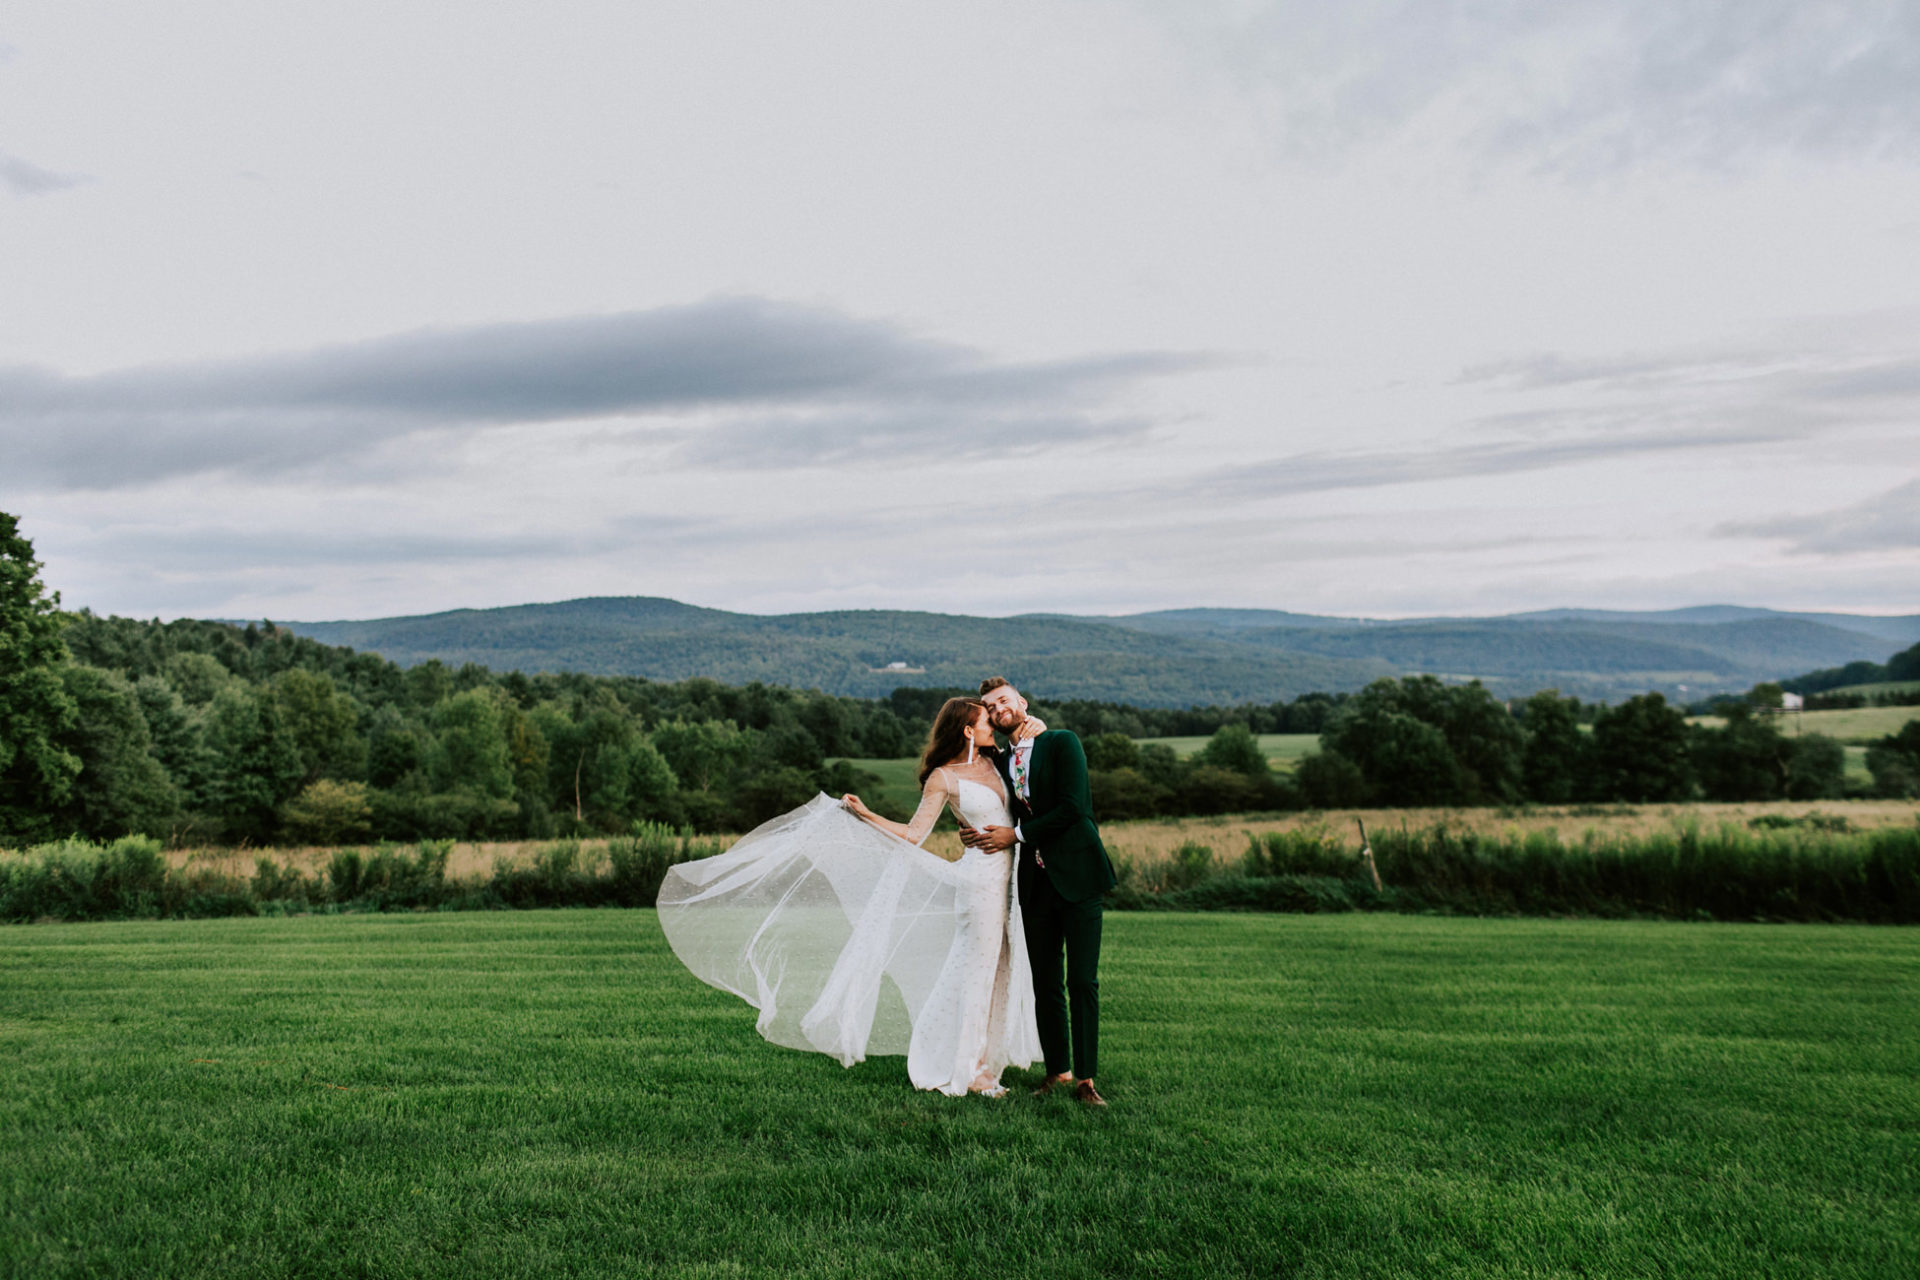 best-top-los-angeles-destination-wedding-photographer-hipster-modern-quirky-editorial-romantic-epic-49-gilbertsville-farm-nyc-upstate-new-york